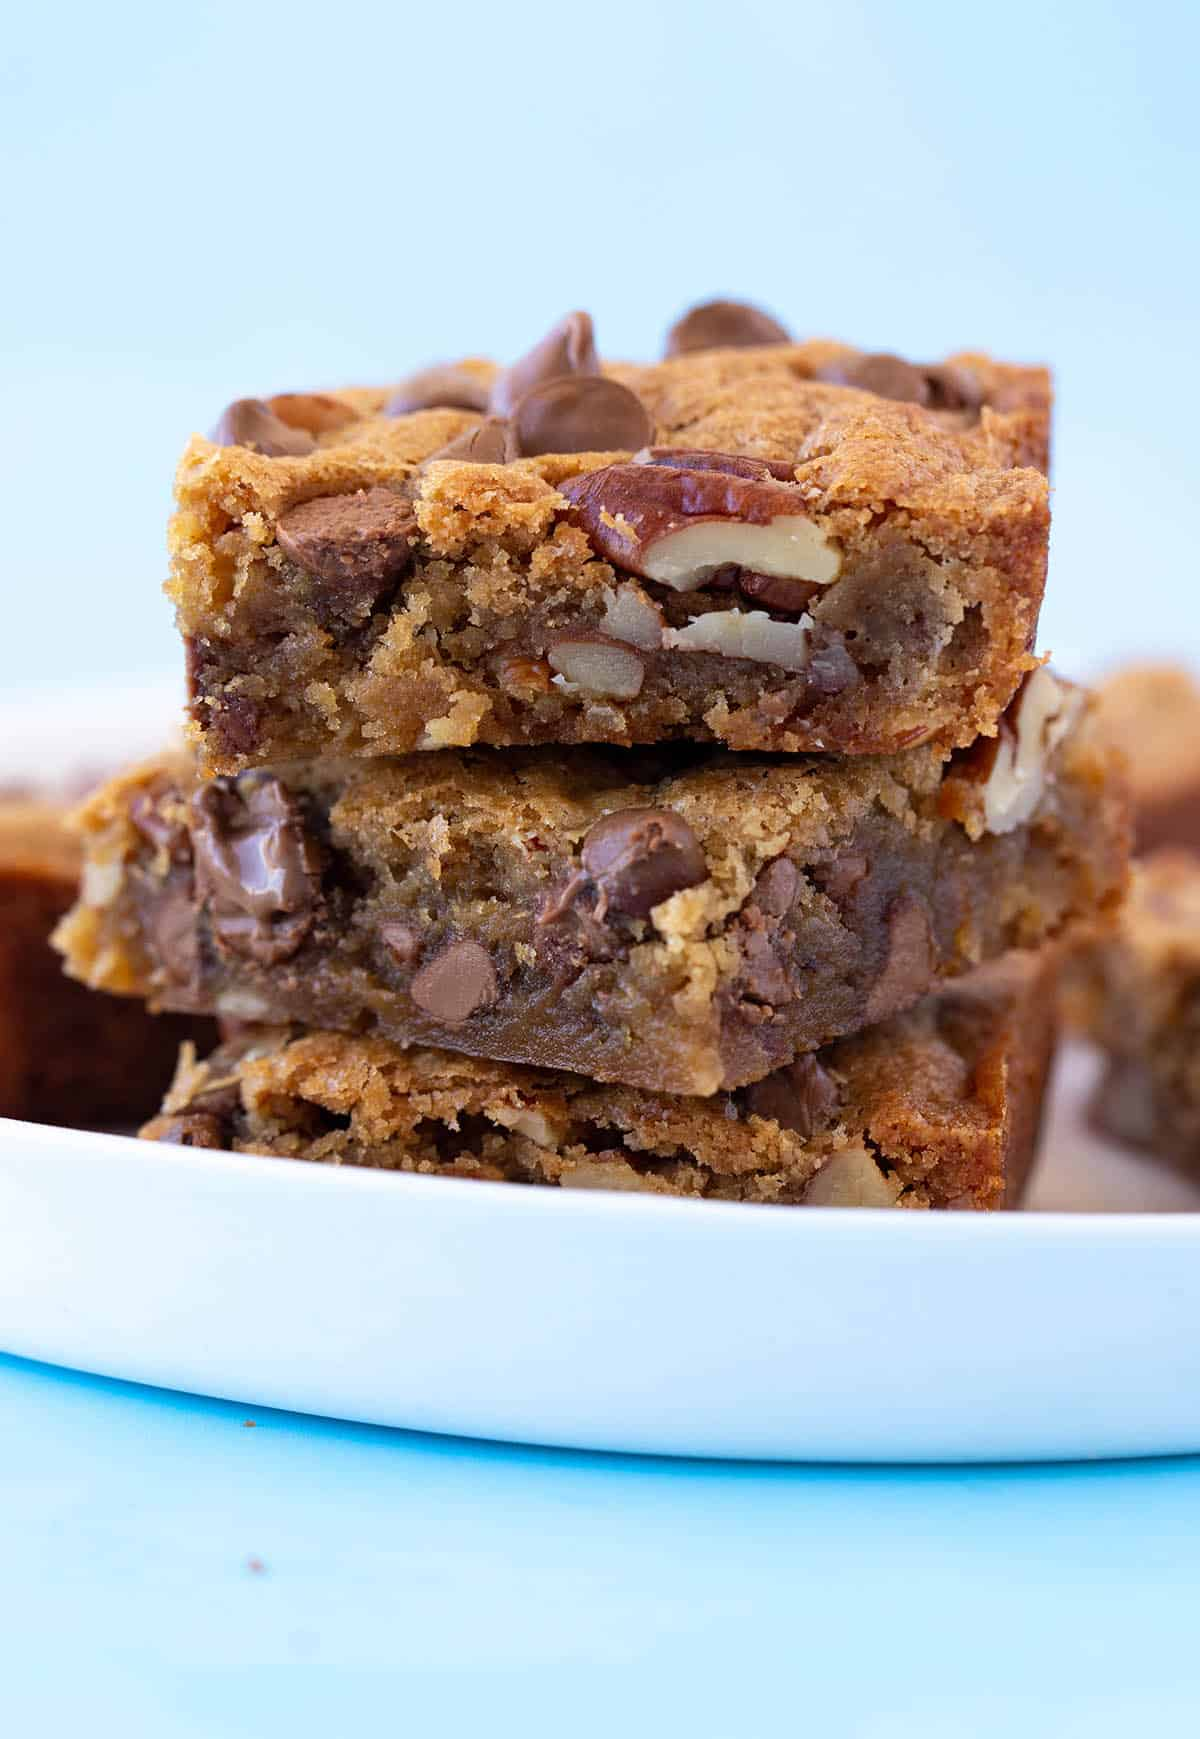 A tall stack of Pecan Chocolate Chip Blondies on a blue background.